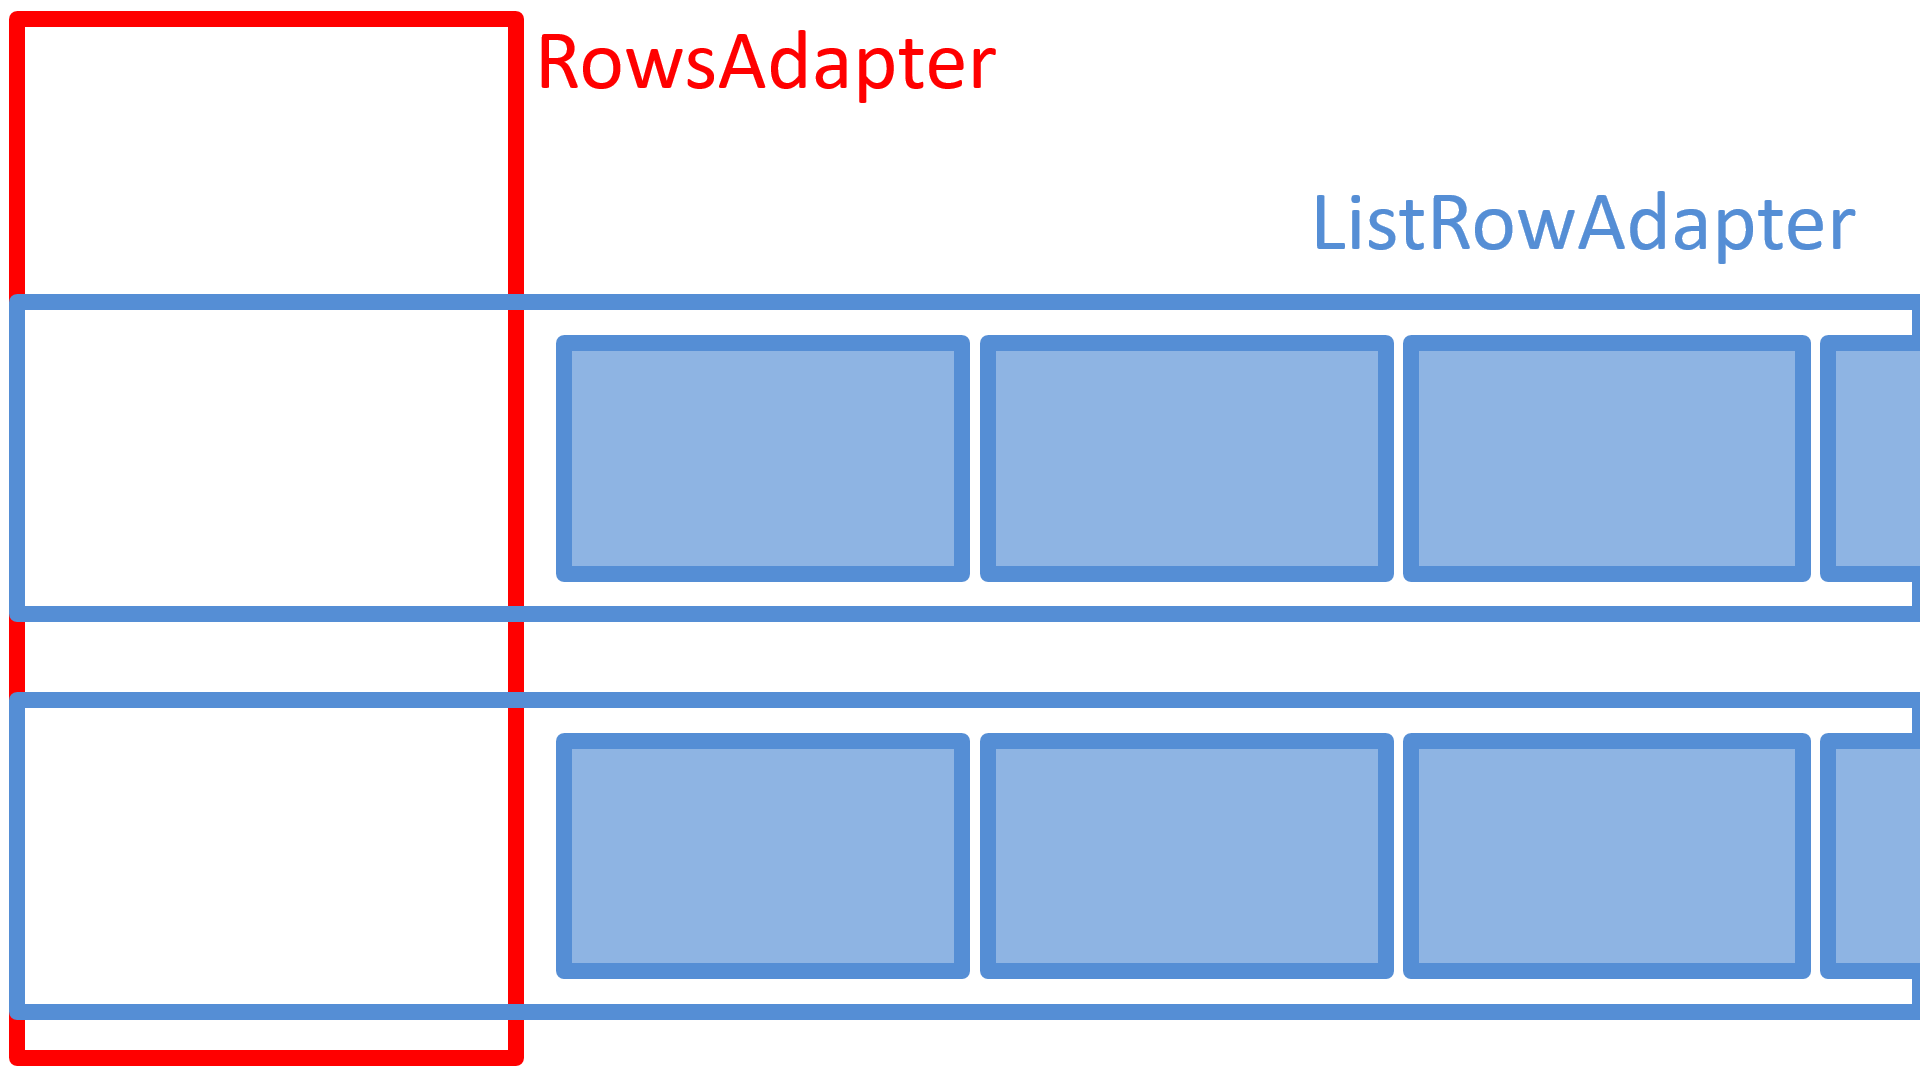 The `RowsAdapter` will contain multiple `ListRowAdapters` and will have its own Presenter to define how the rows of content should be displayed.